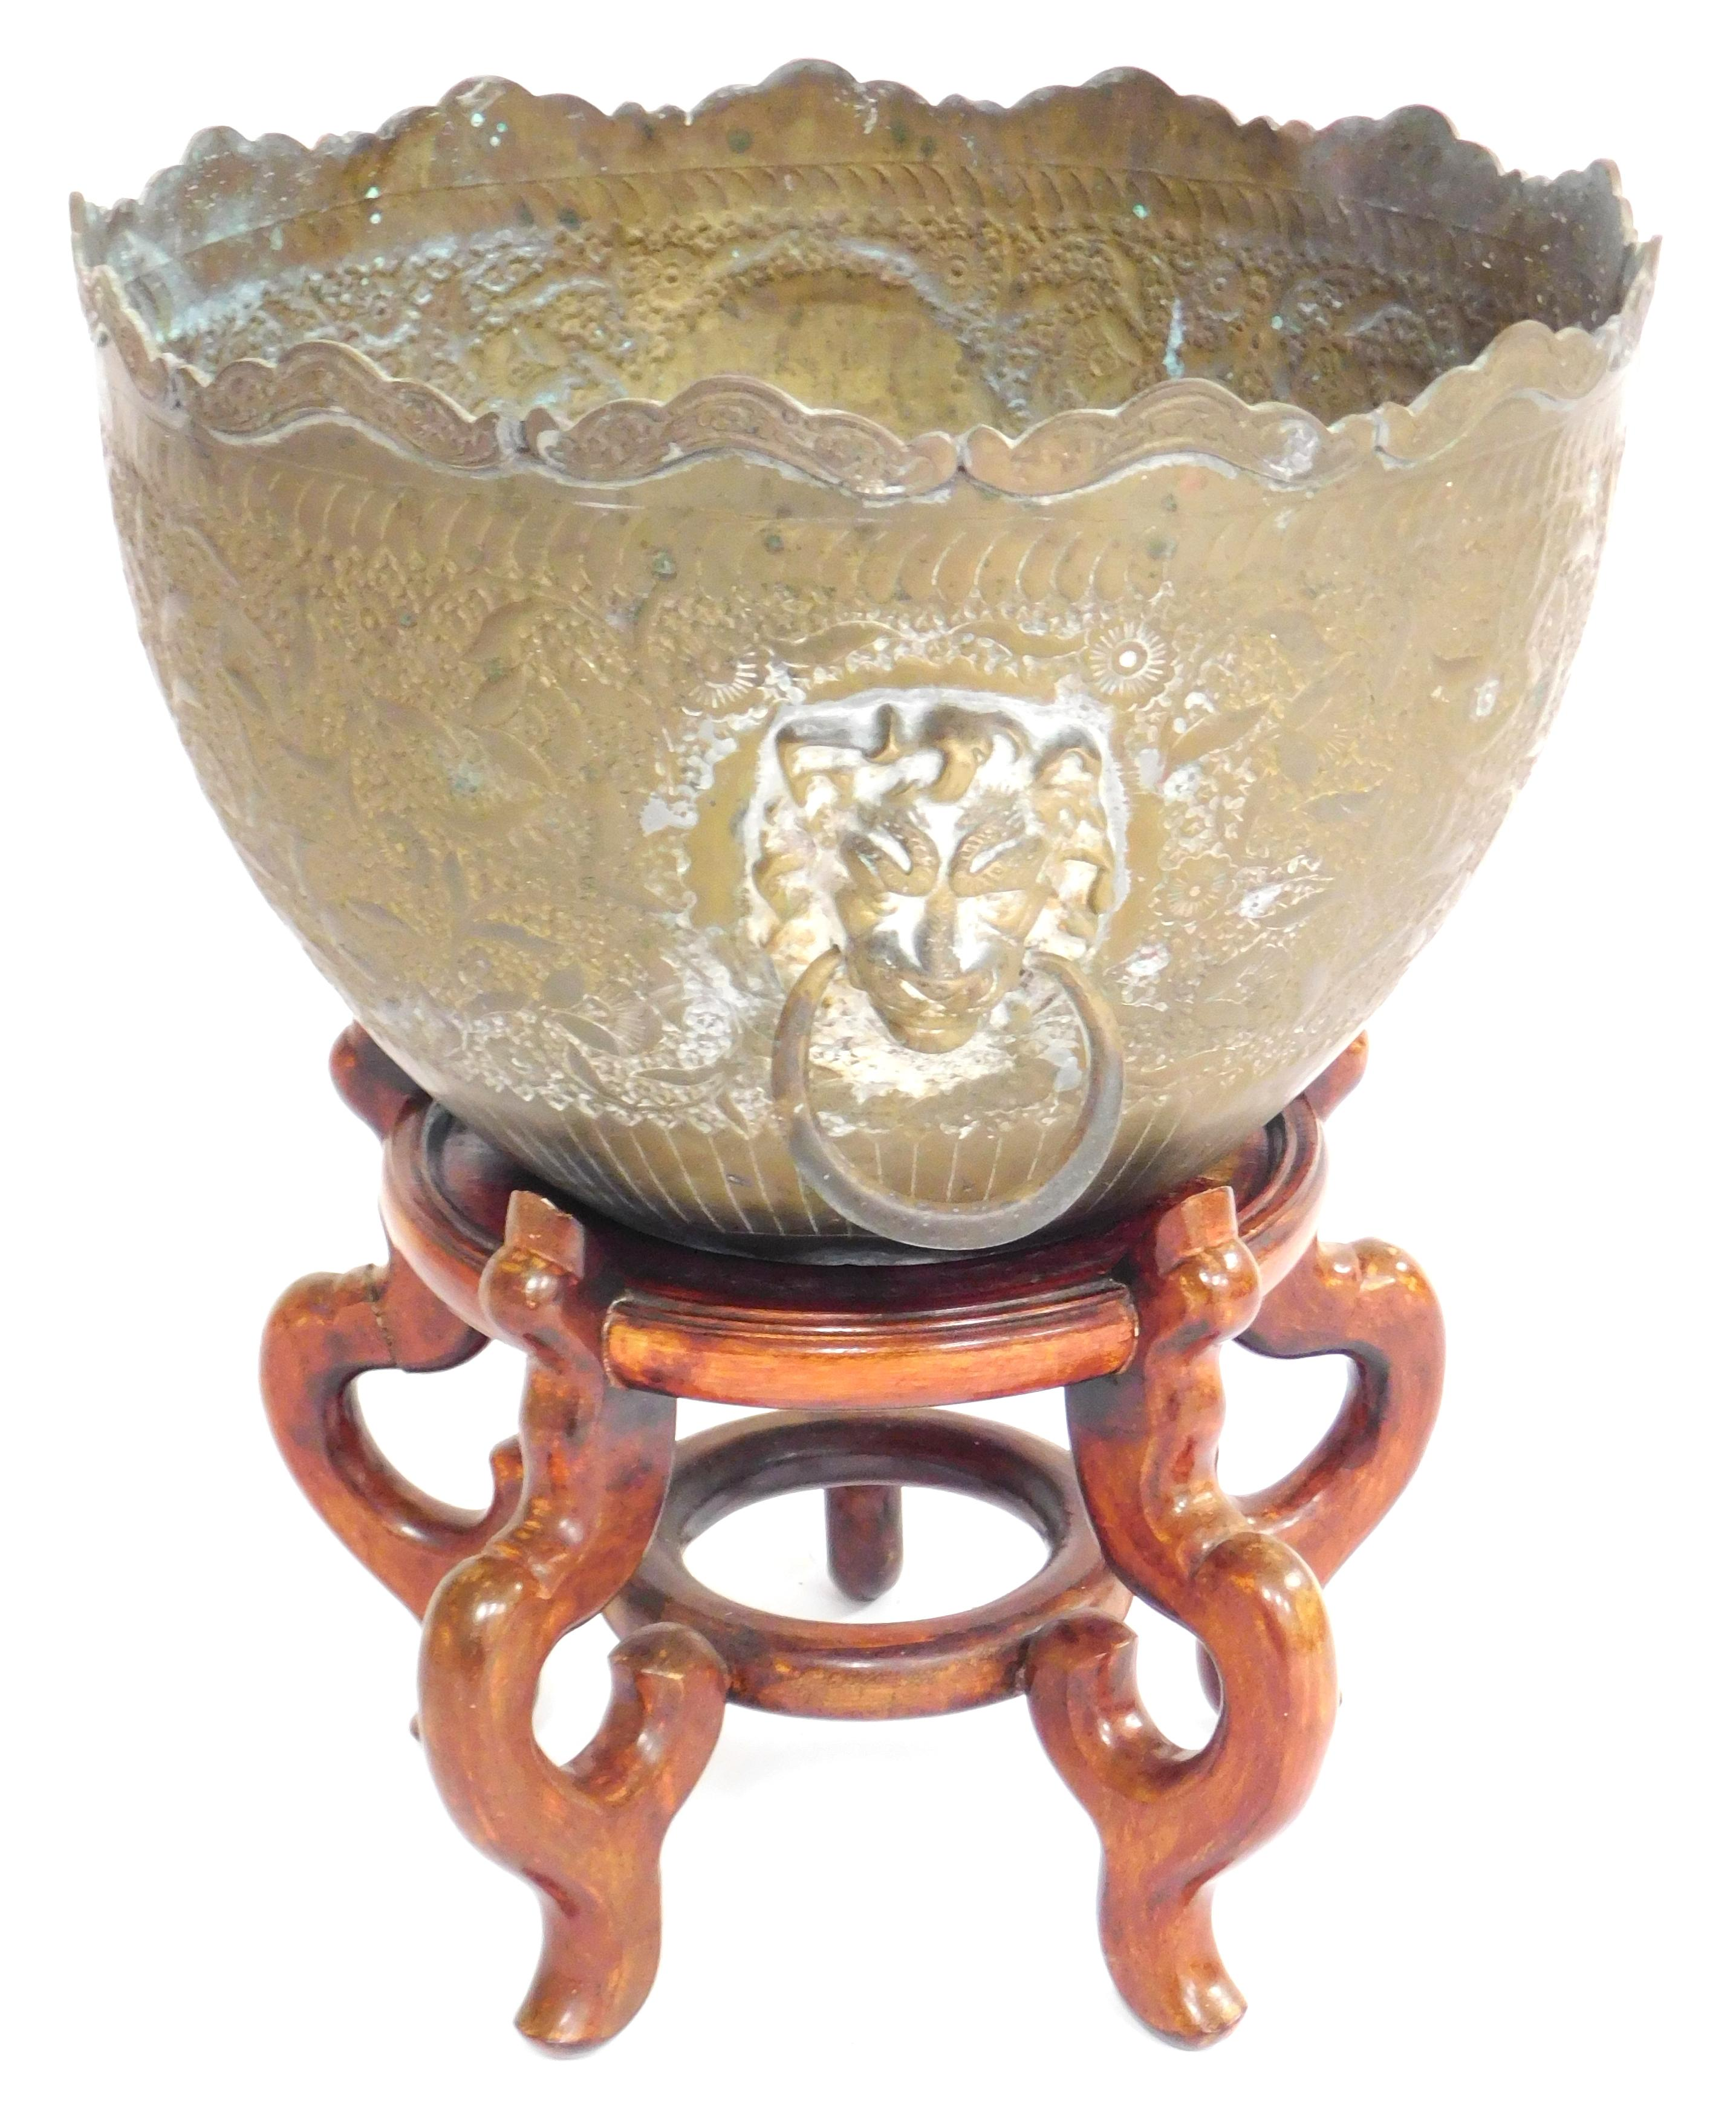 ASIAN: Brass planter and five-legged wooden stand, planter decorated with lion head loop handles and stylized flowers, some corrosio...